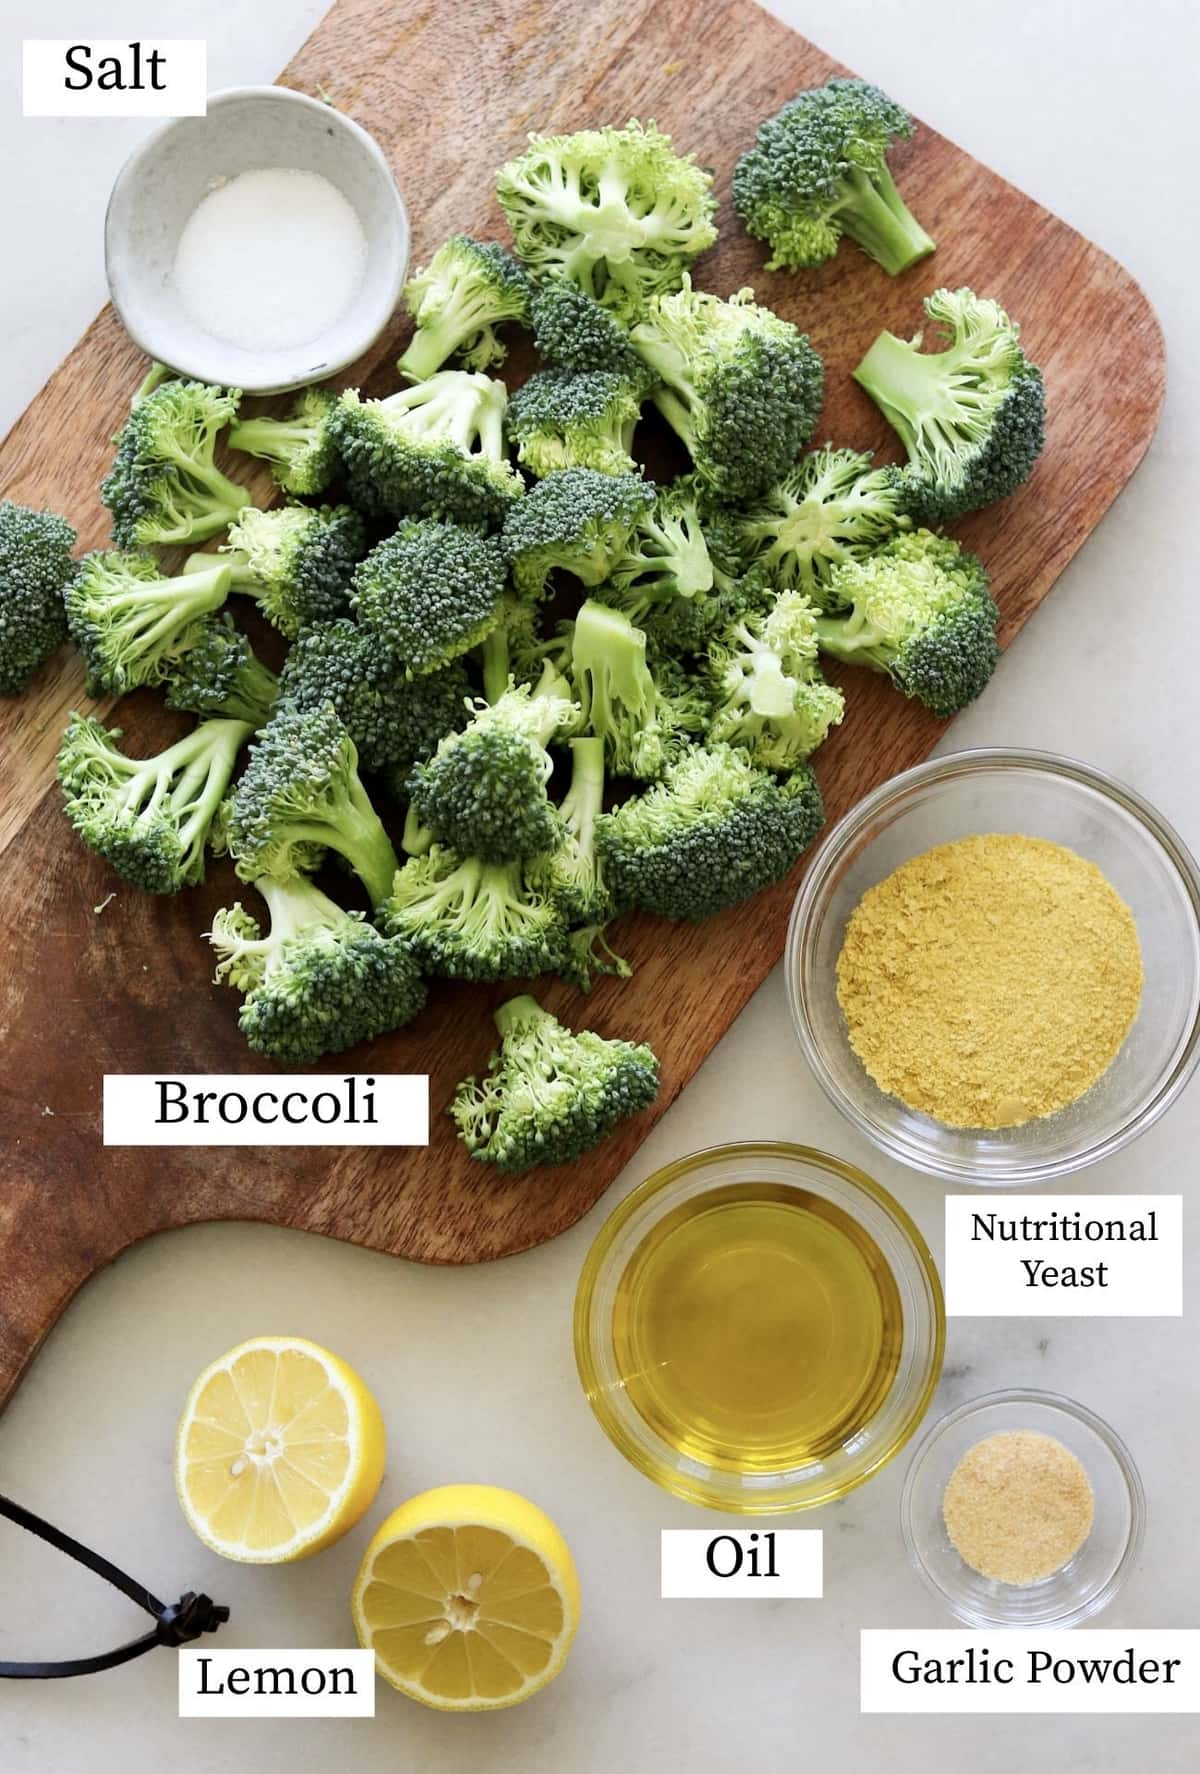 The recipe ingredients separated and labeled: Broccoli, nutritional yeast, salt, lemon, oil, garlic powder.